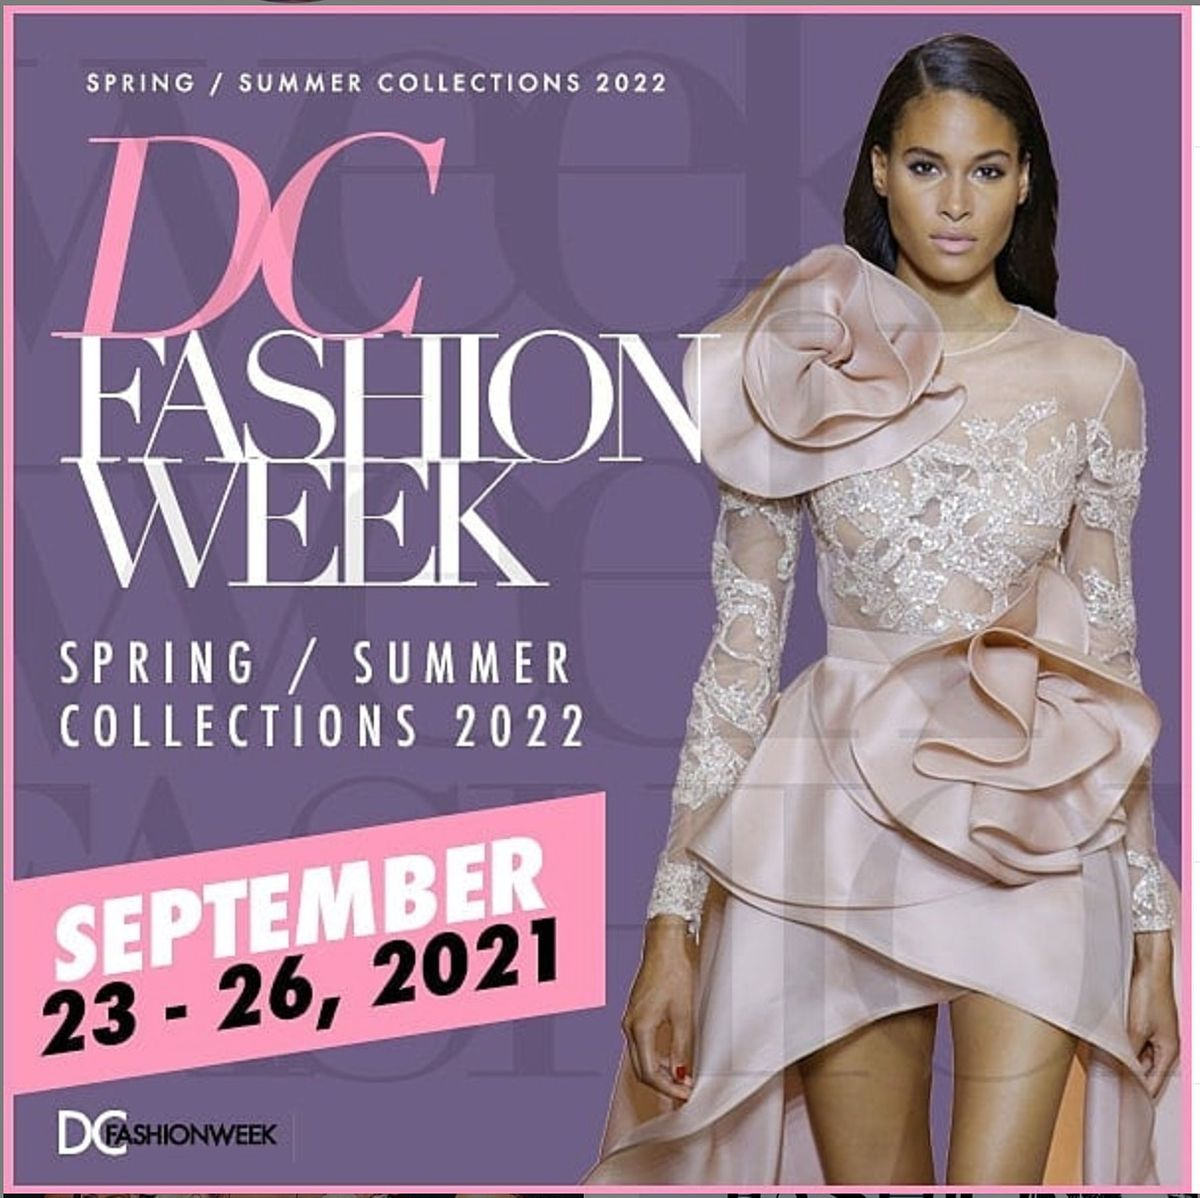 35th International Couture Collections presented by DC Fashion Week